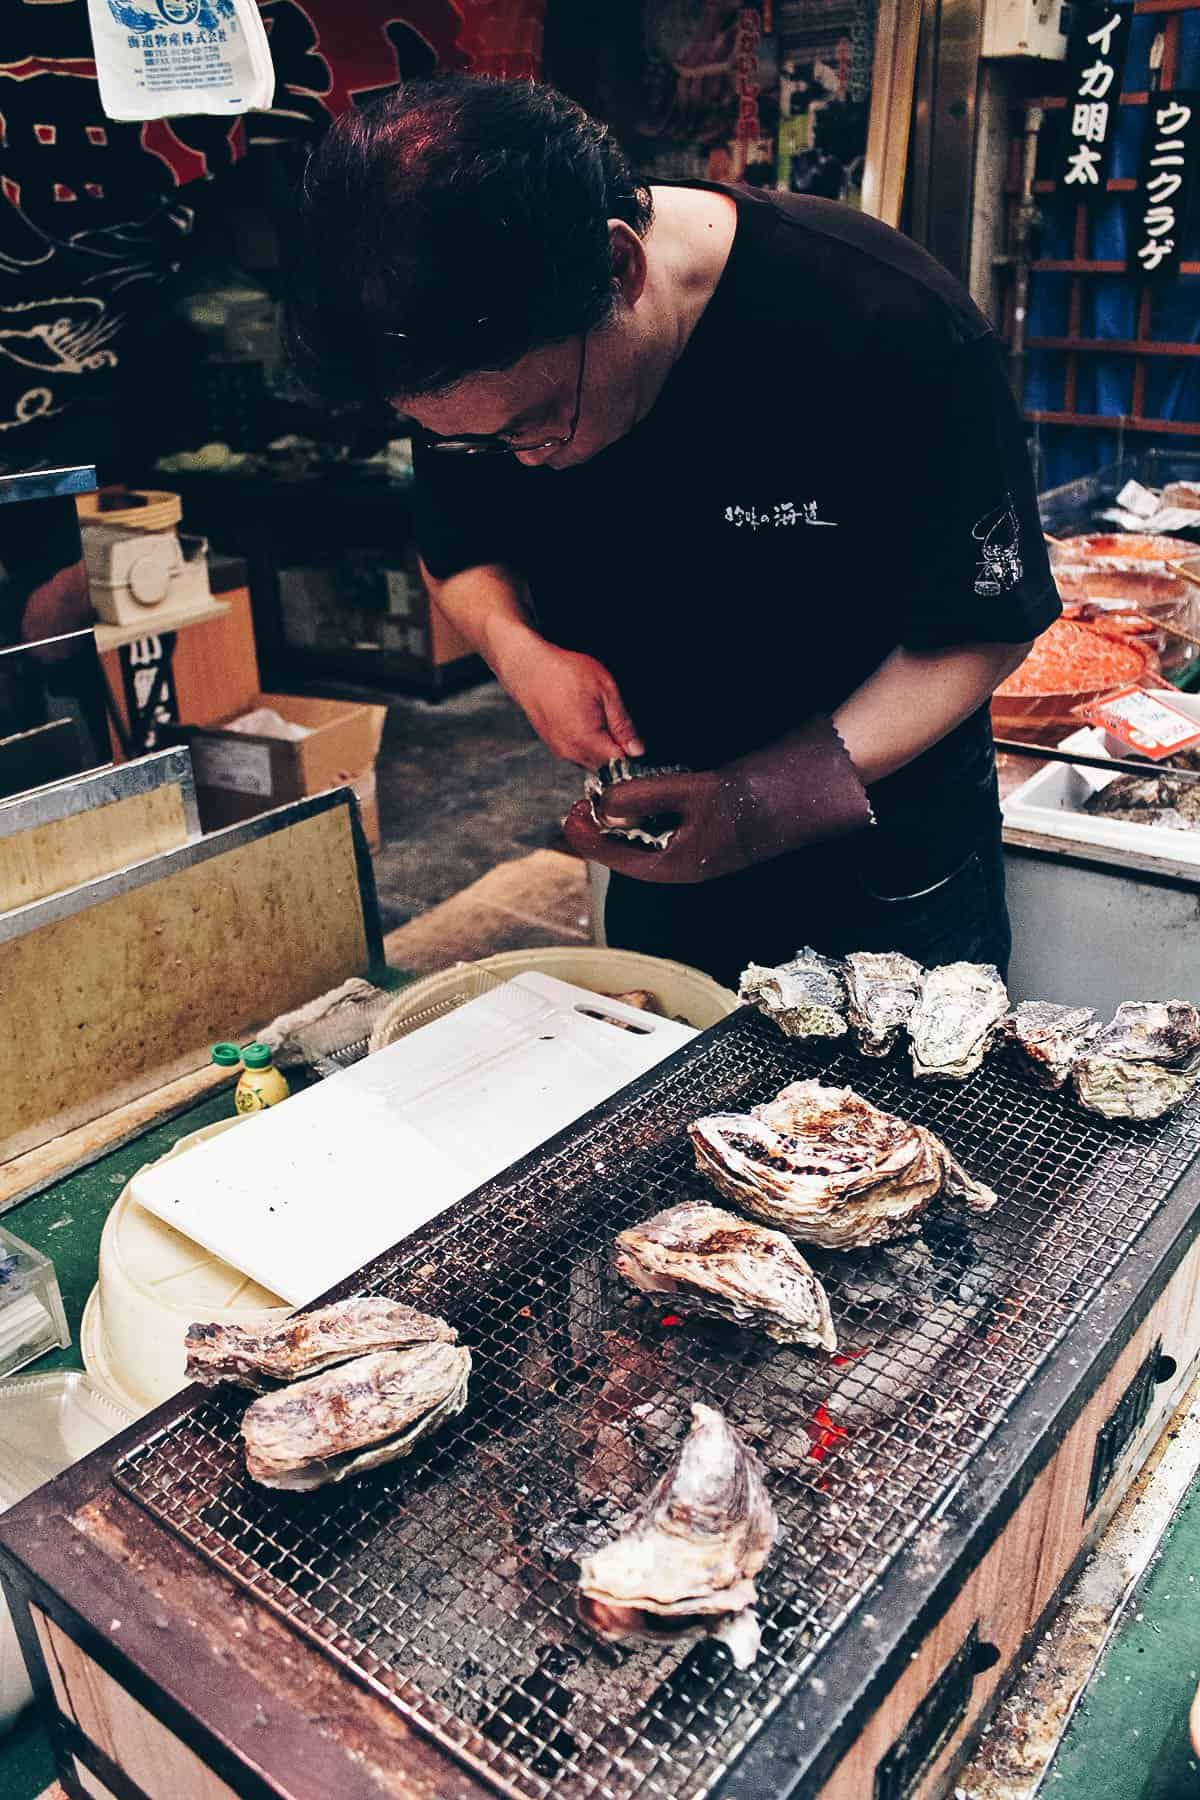 Man shucking oyster at Kuromon Ichiba Market